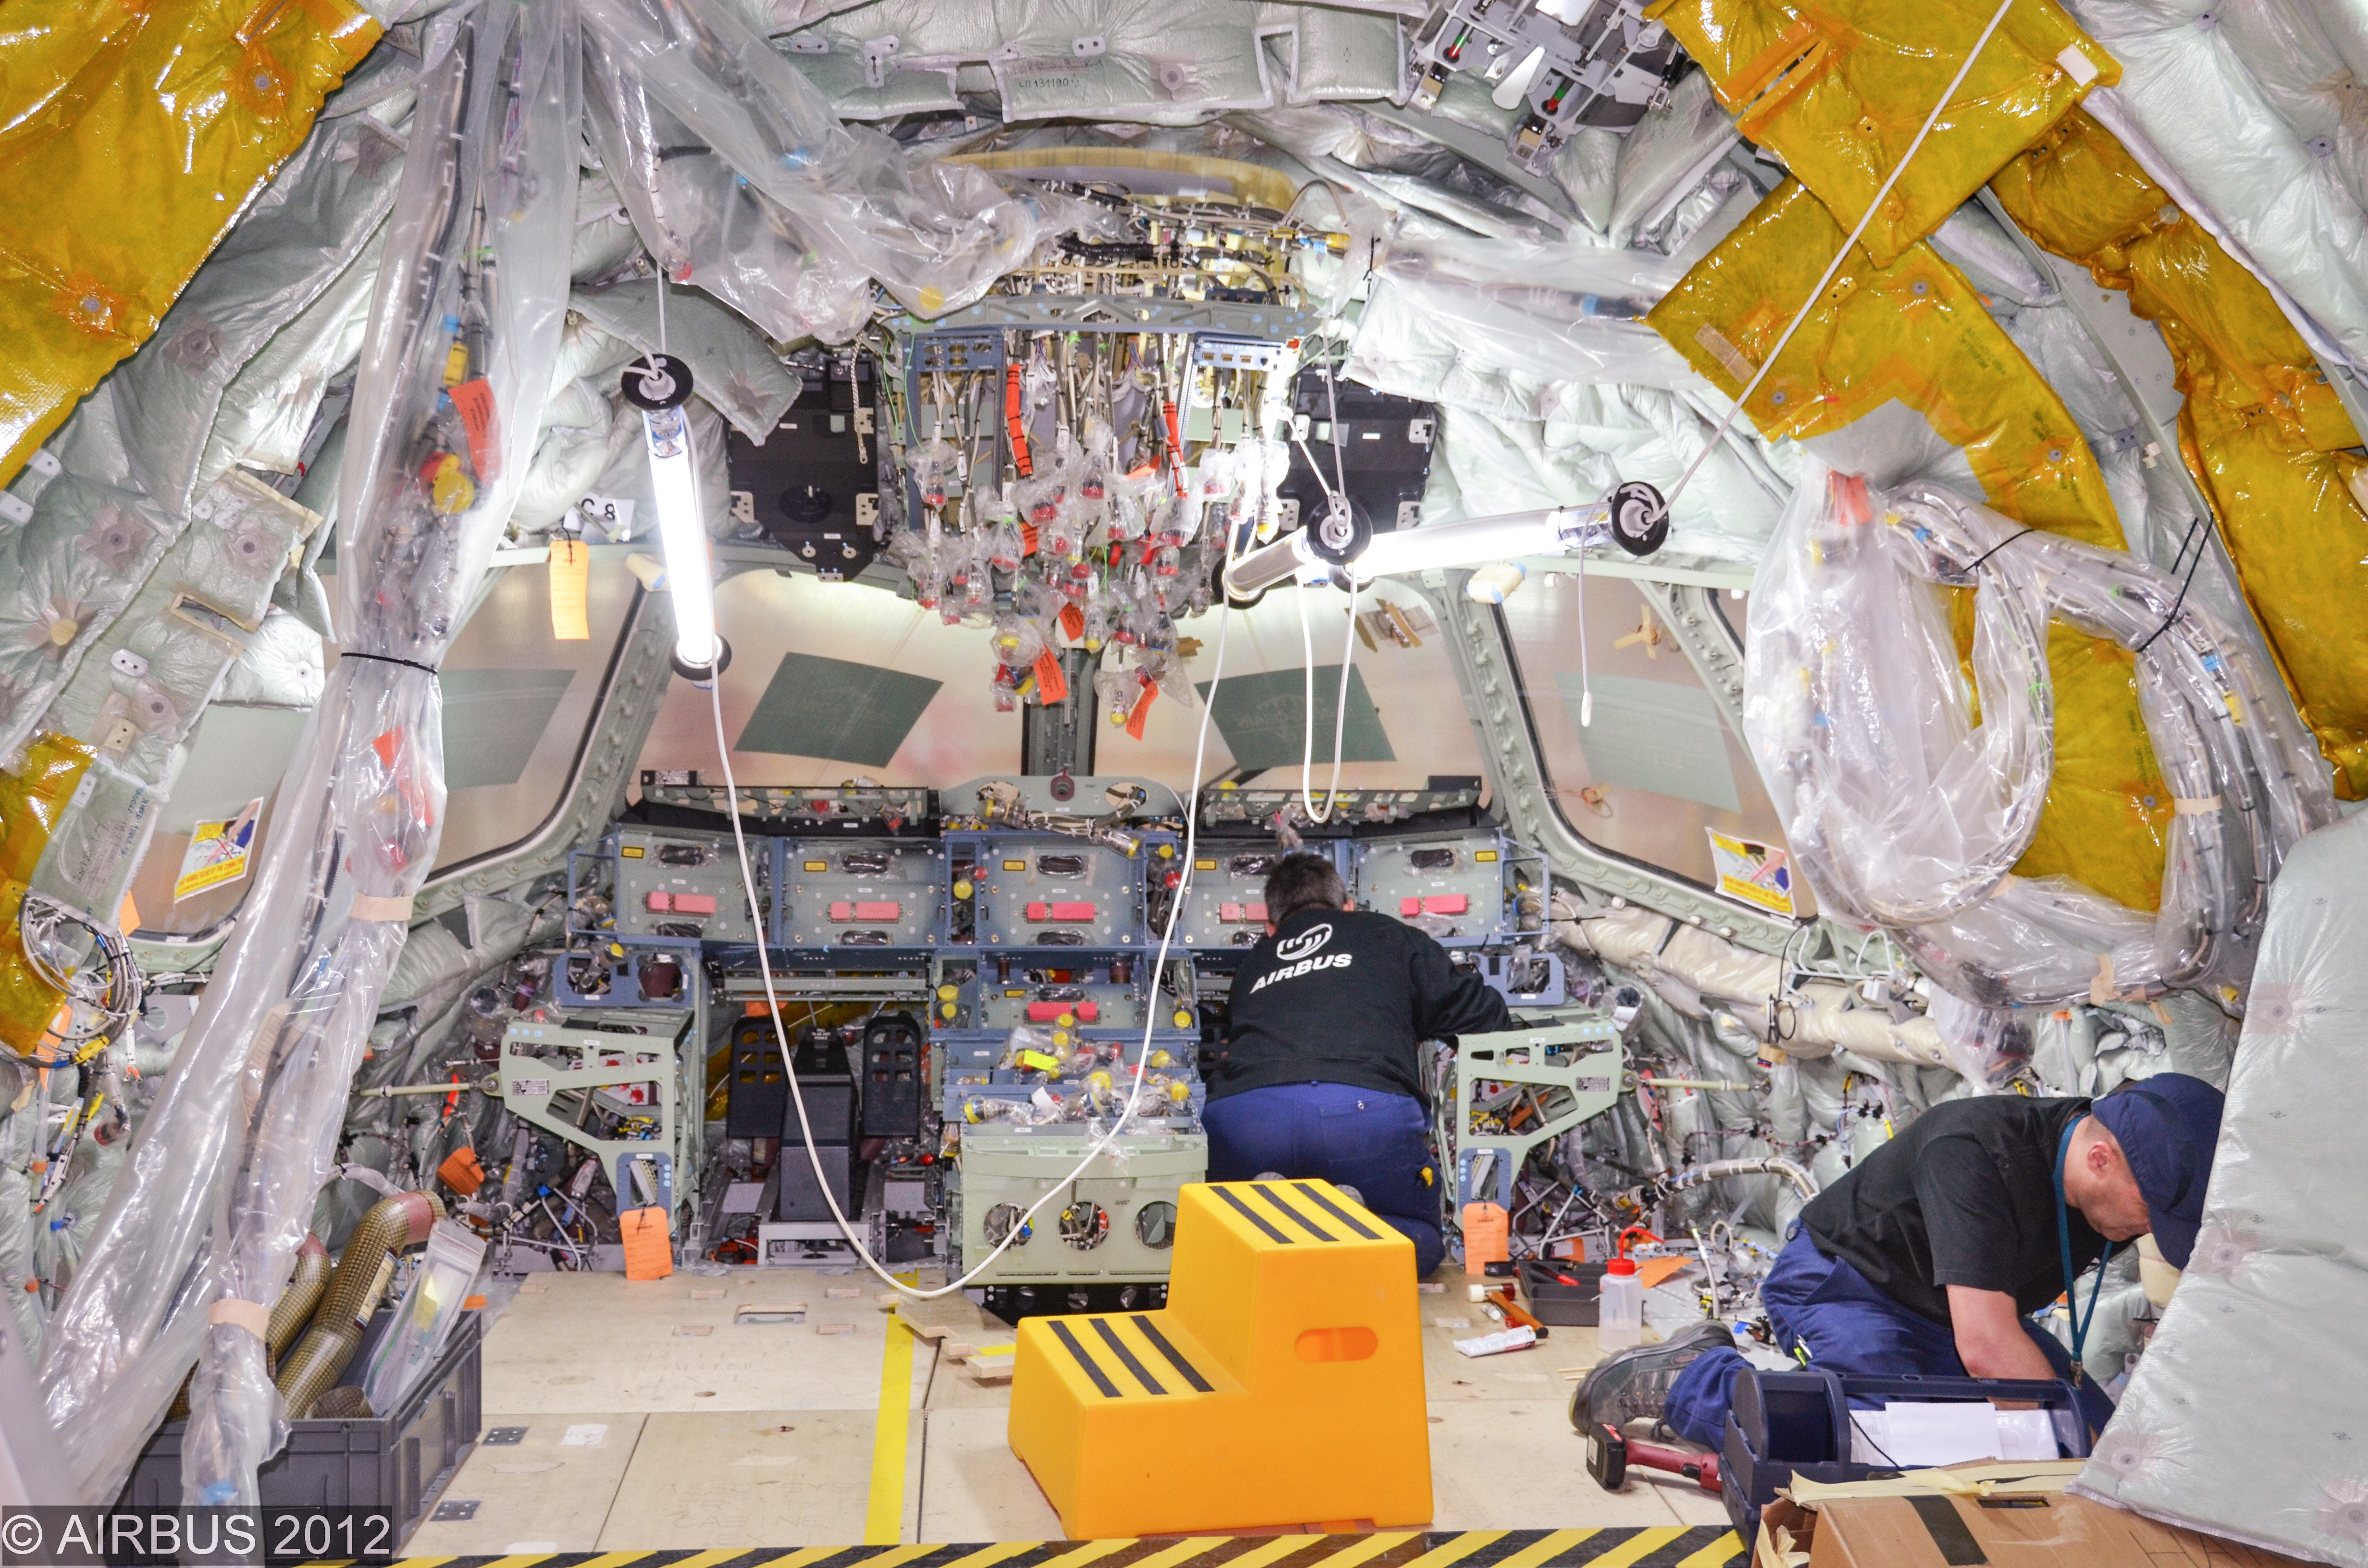 """An airplane being assembled at an Airbus facility. The company is developing """"smart tools"""" that use local and network intelligence as part of its own Industry 4.0 """"factory of the future"""" initiative."""